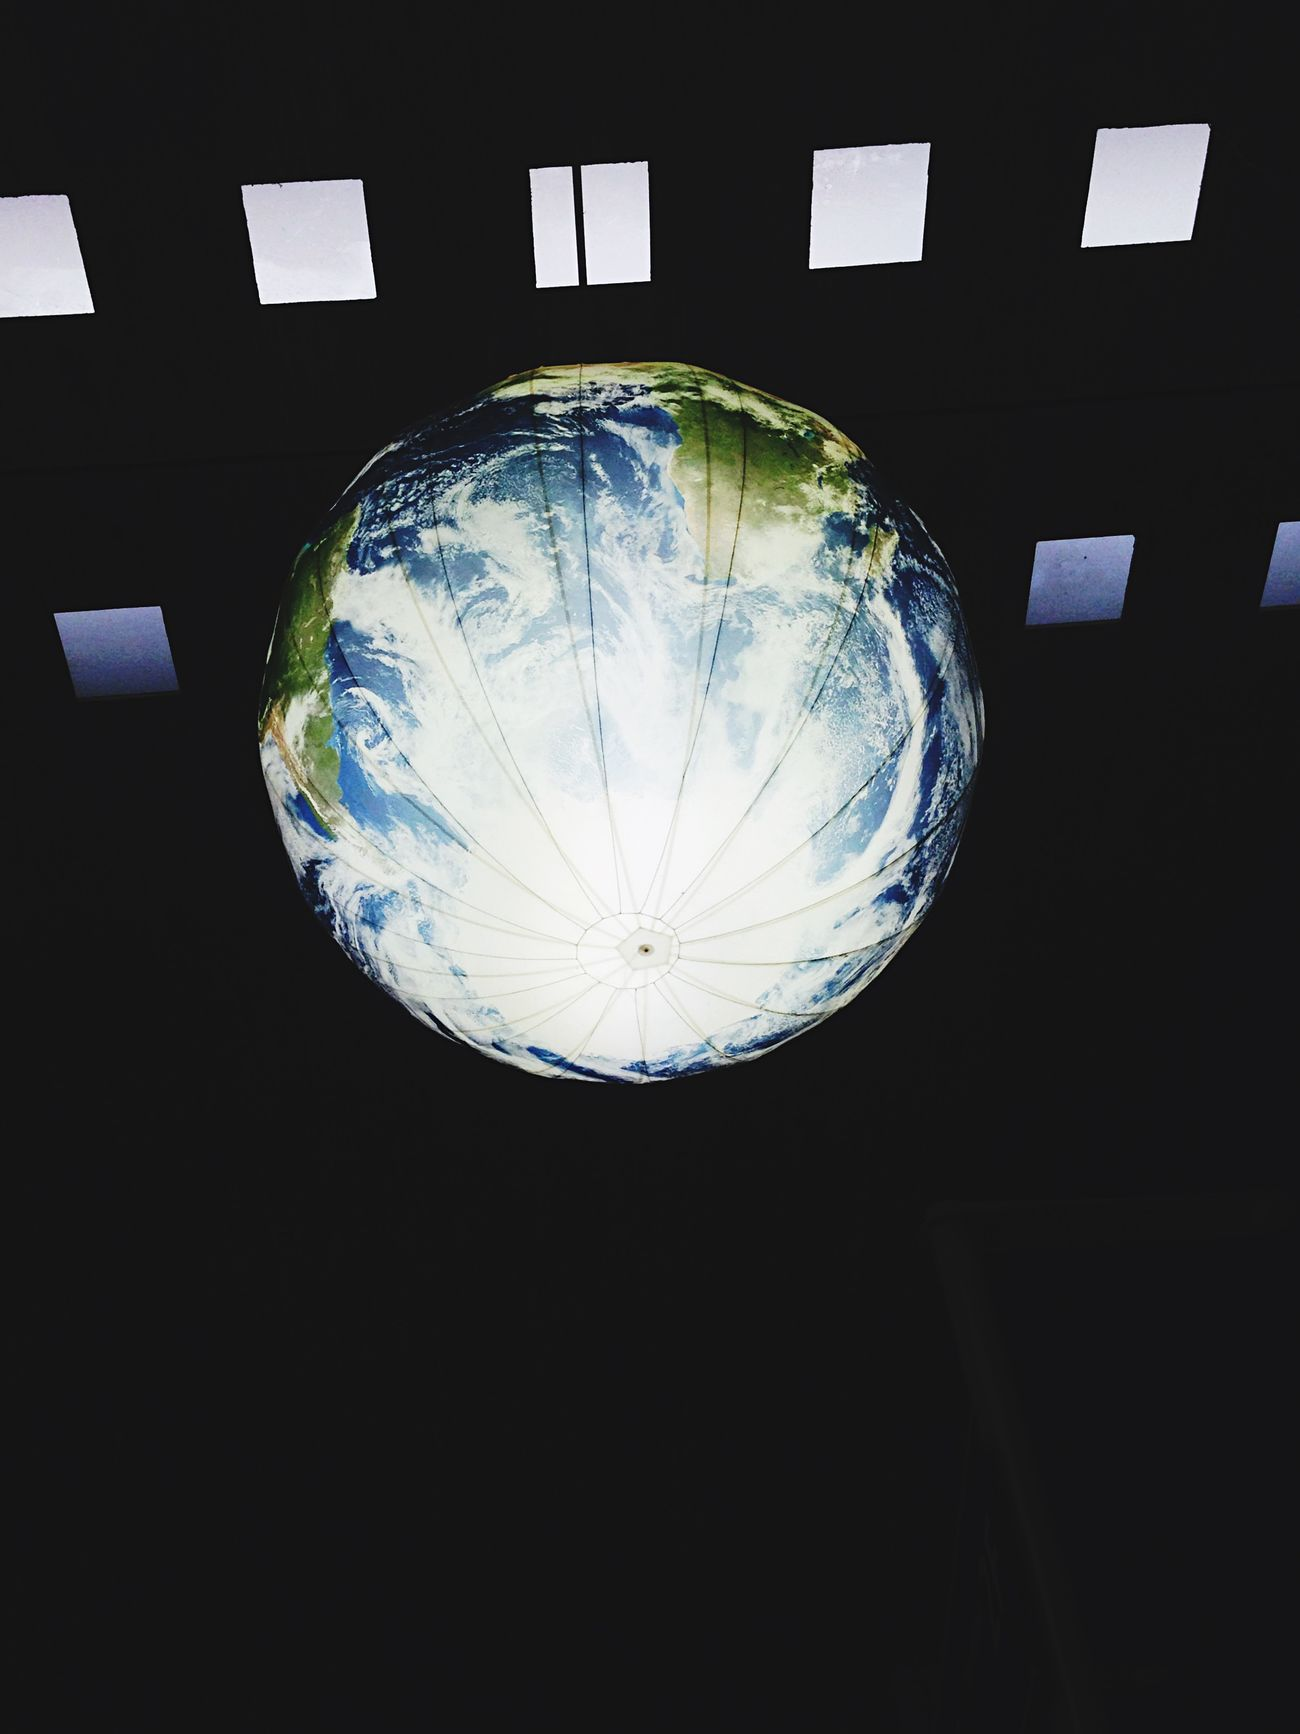 South Earth Earth_Collections Antarctica Antarctic Continent Southpole South Pole Globe Light